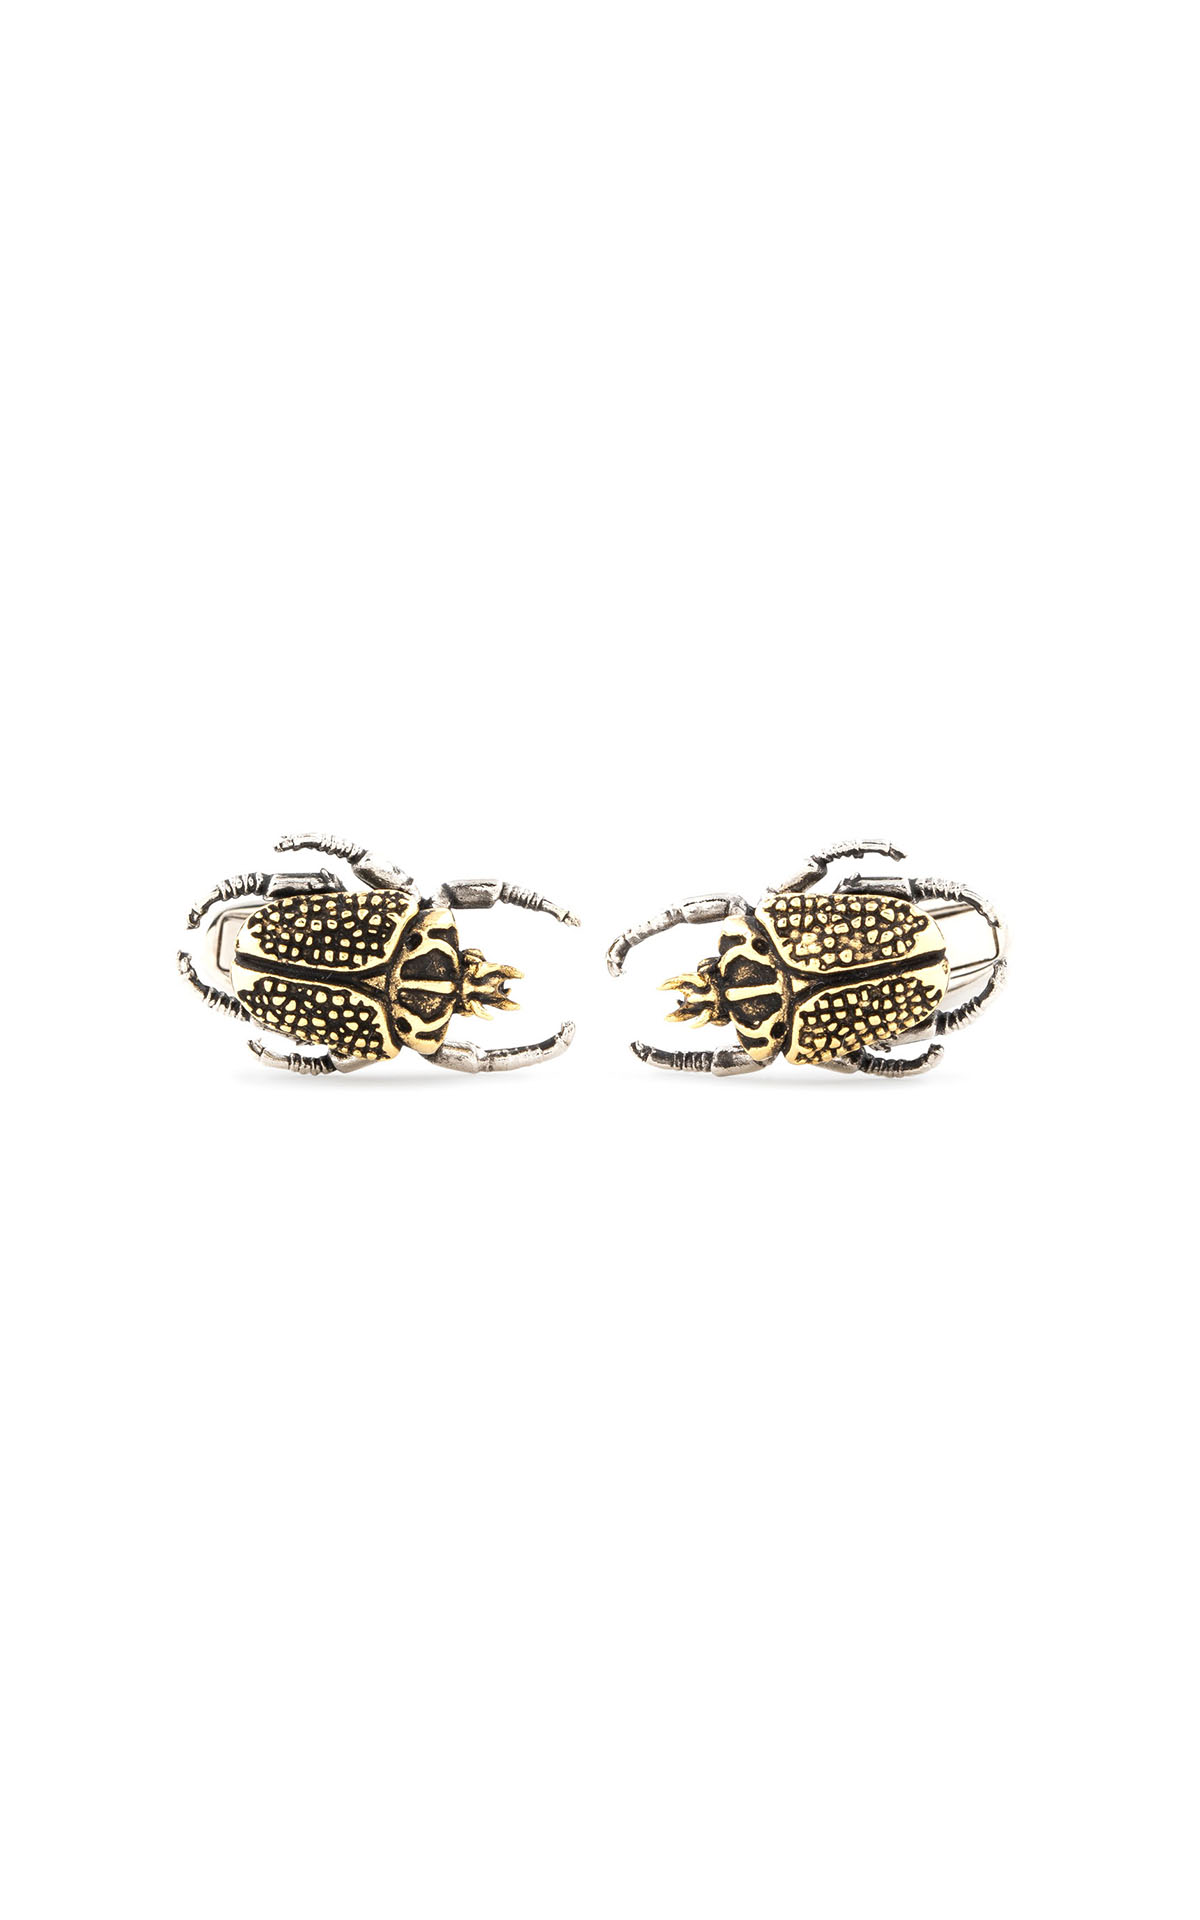 Paul Smith men's 'goliath beetle' cufflinks at The Bicester Village Shopping Collection